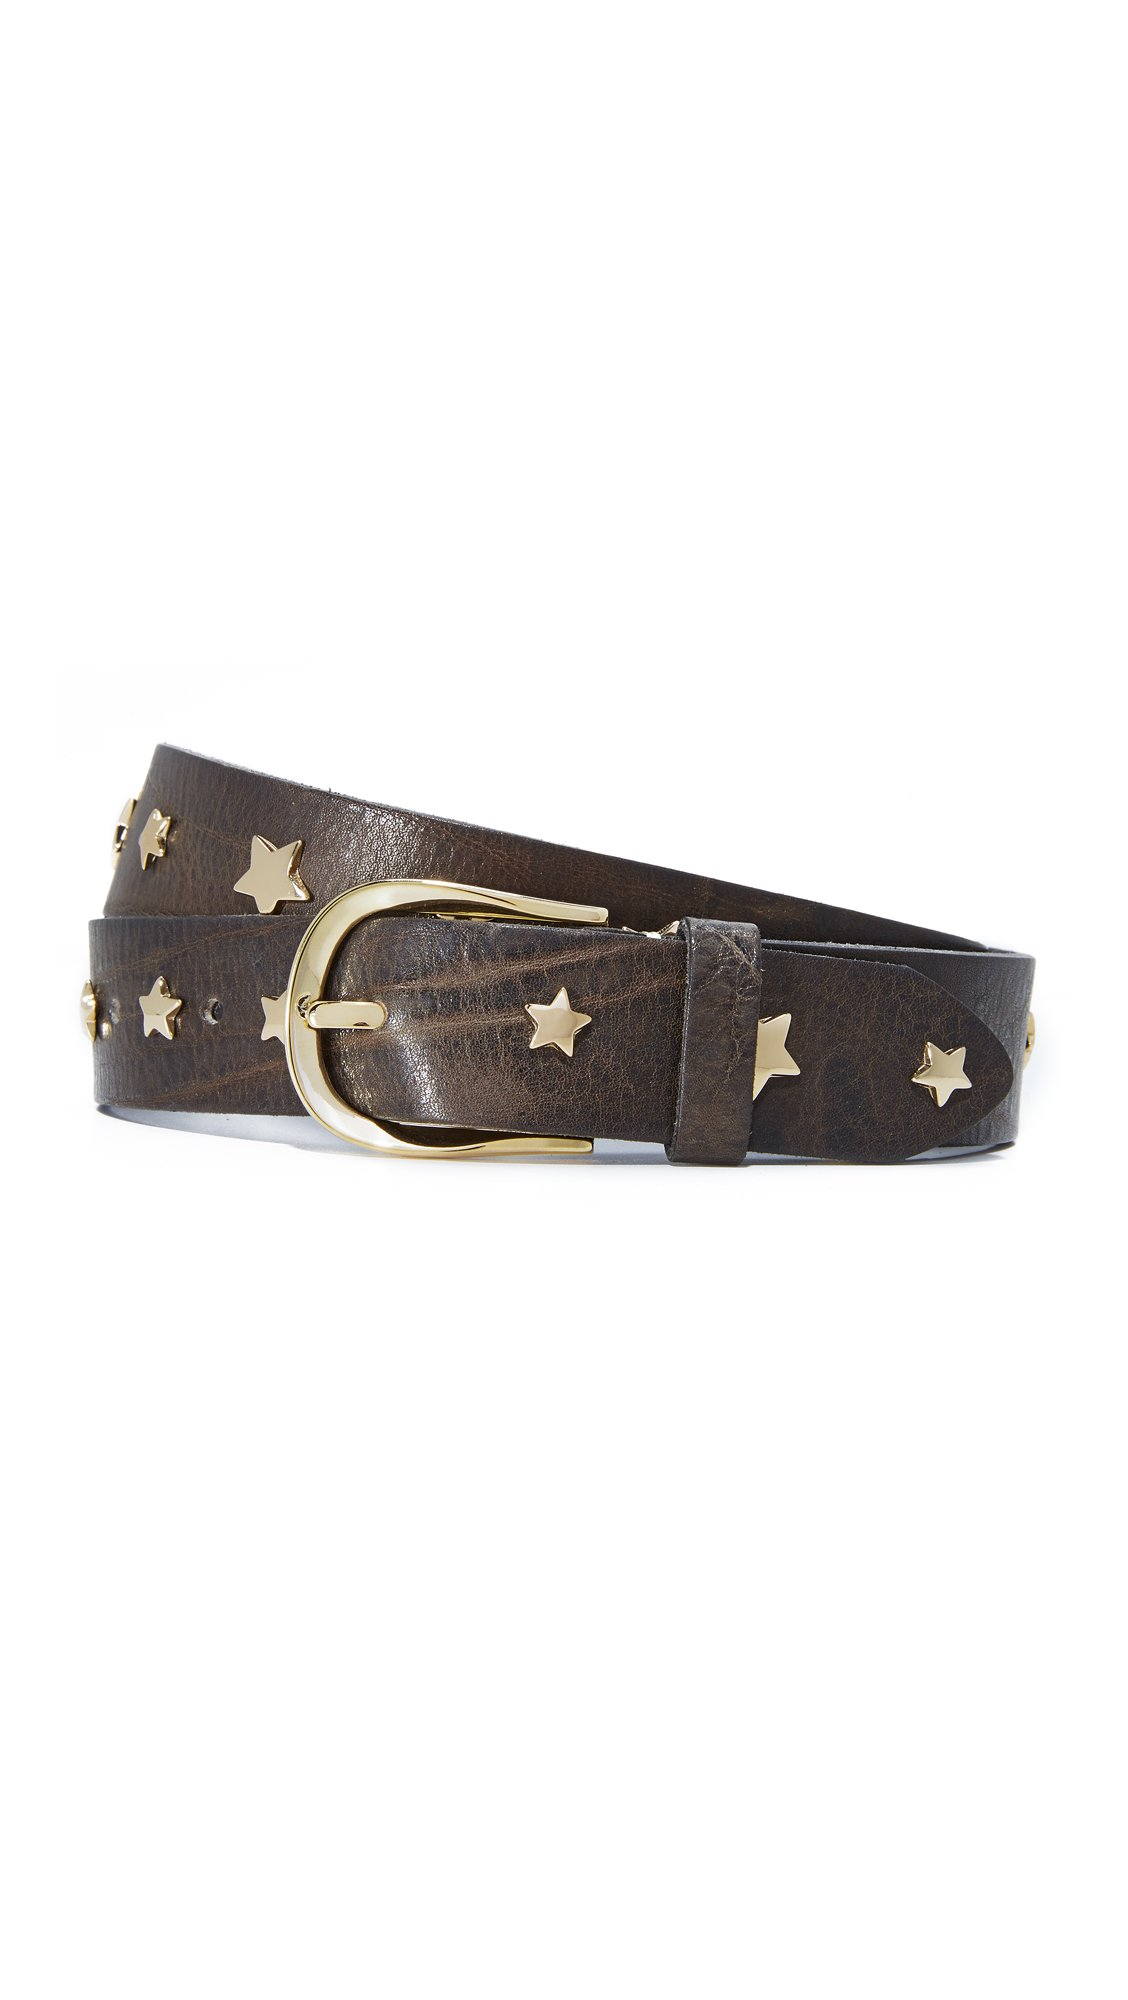 B. Belt Women's Star Studded Belt, Charcoal, Large by B. Belt